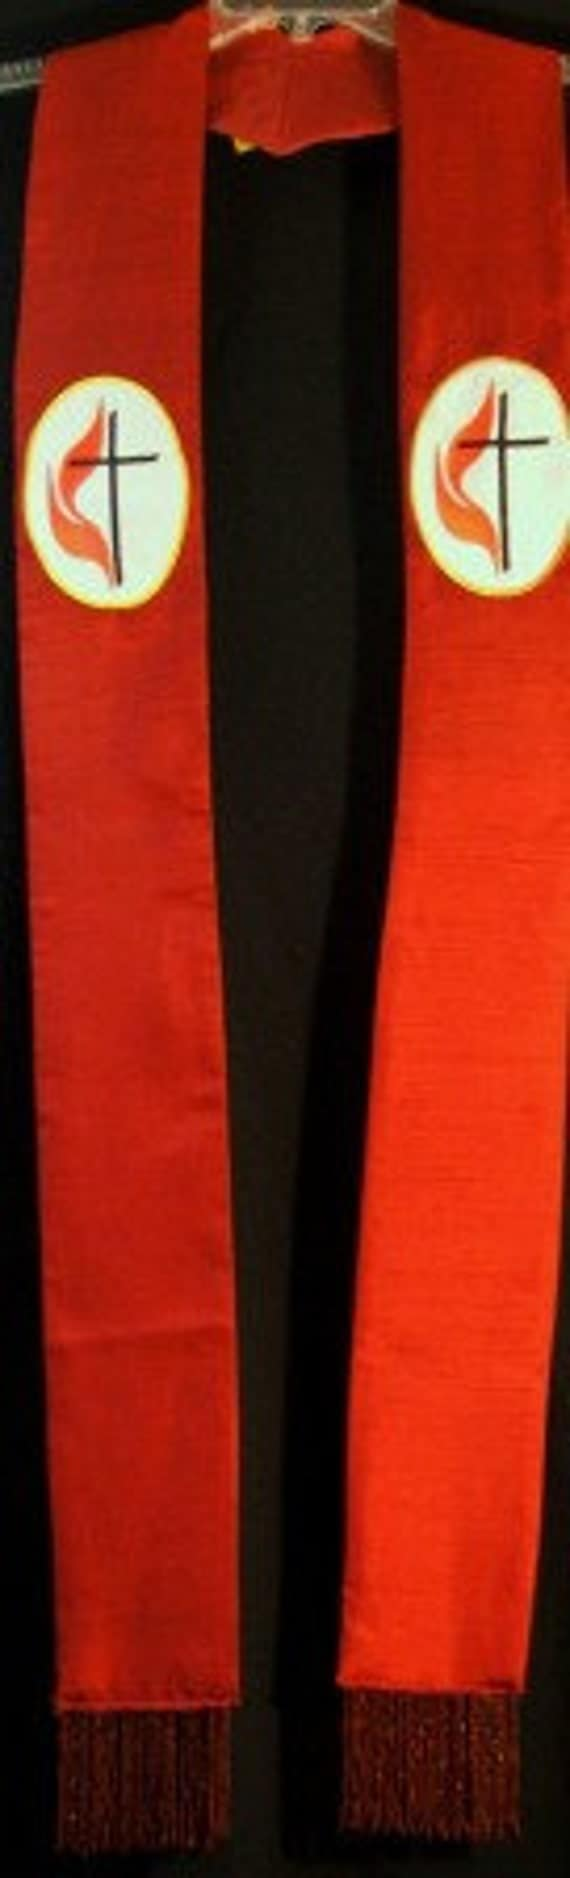 Clergy Stole, Vestments, UMC, Ordination, Red, Green, Blue, White, Purple MADE to ORDER